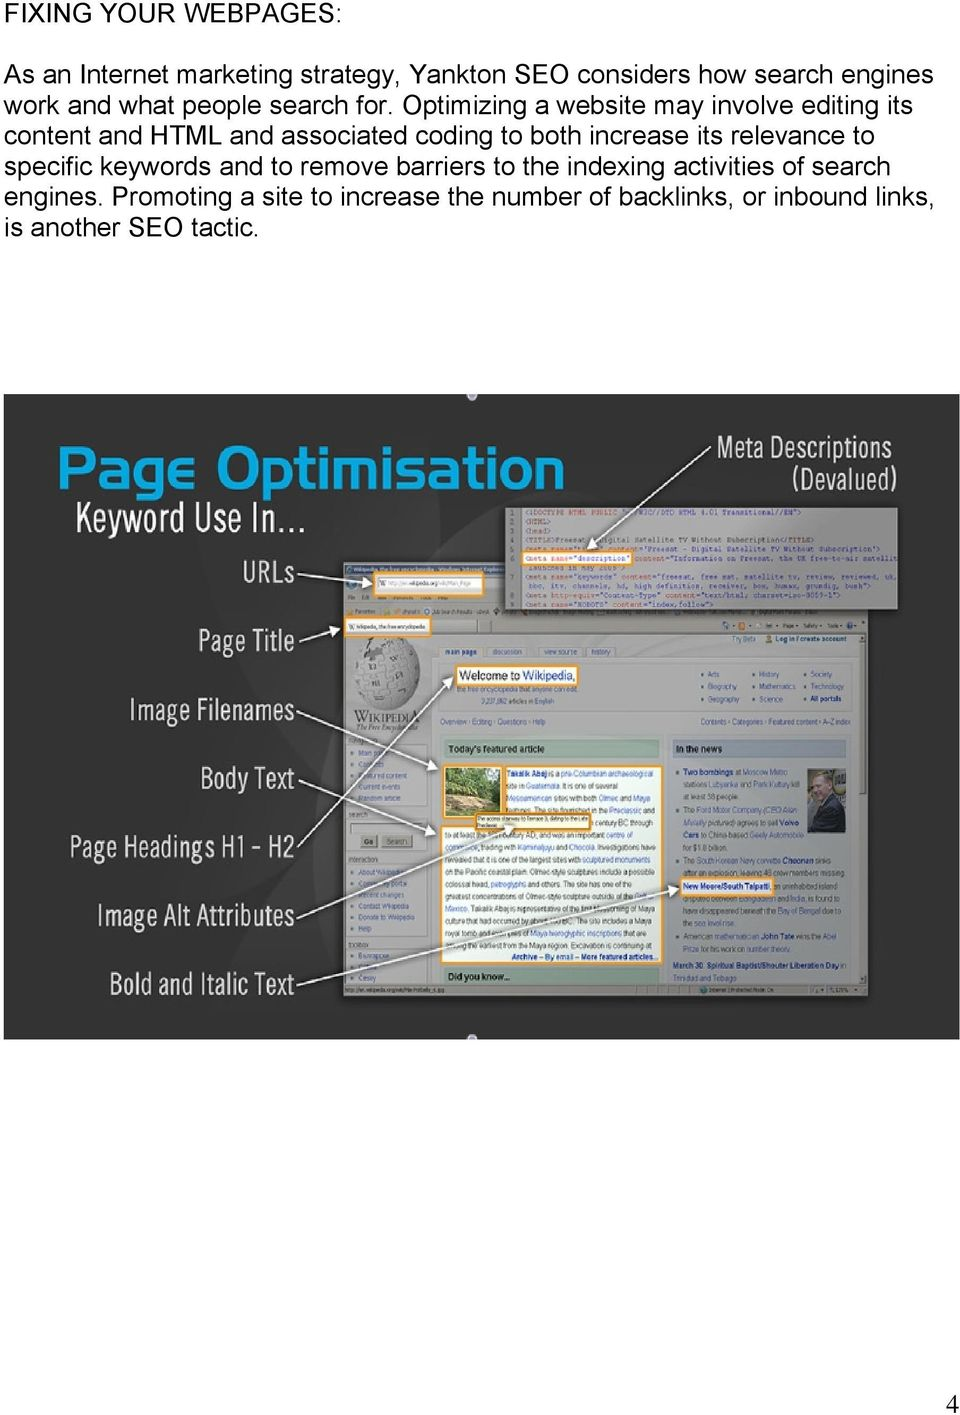 Optimizing a website may involve editing its content and HTML and associated coding to both increase its